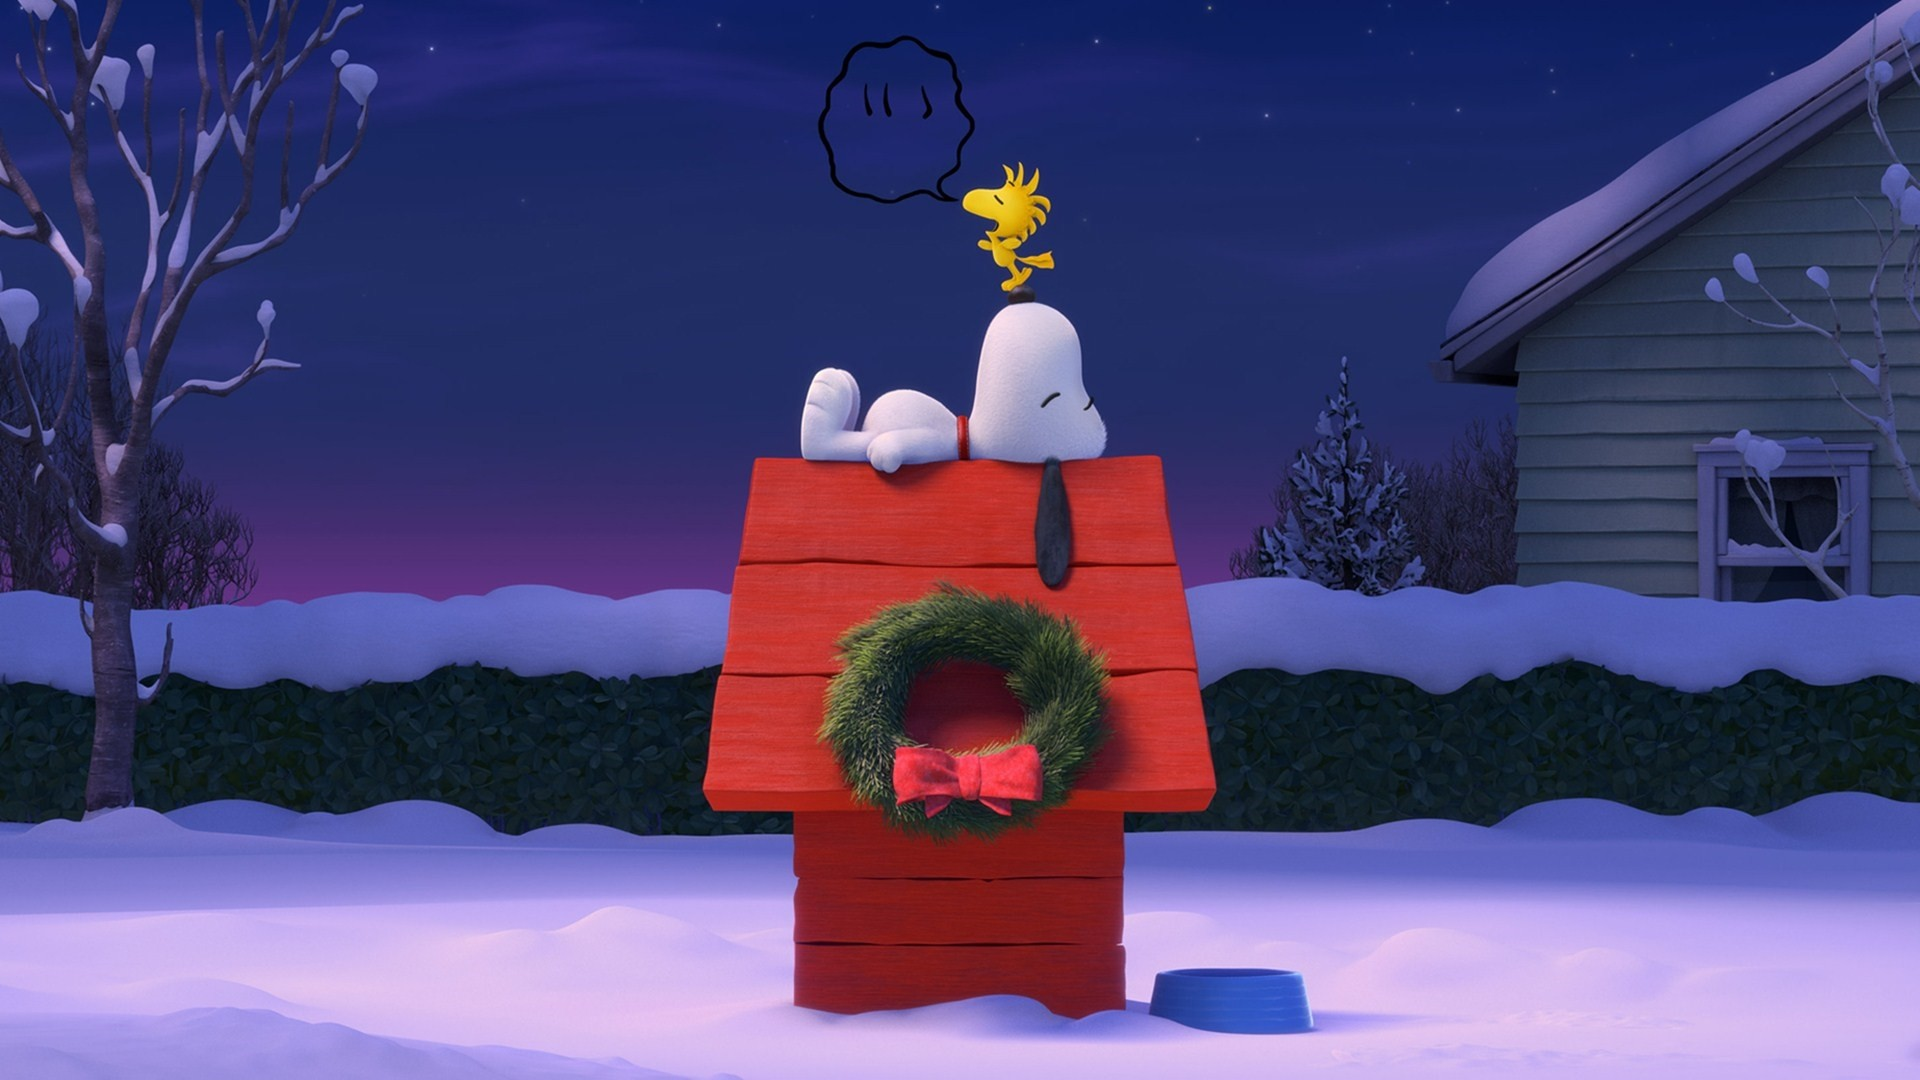 Desktop Snoopy Christmas Wallpaper Snoopy Background .